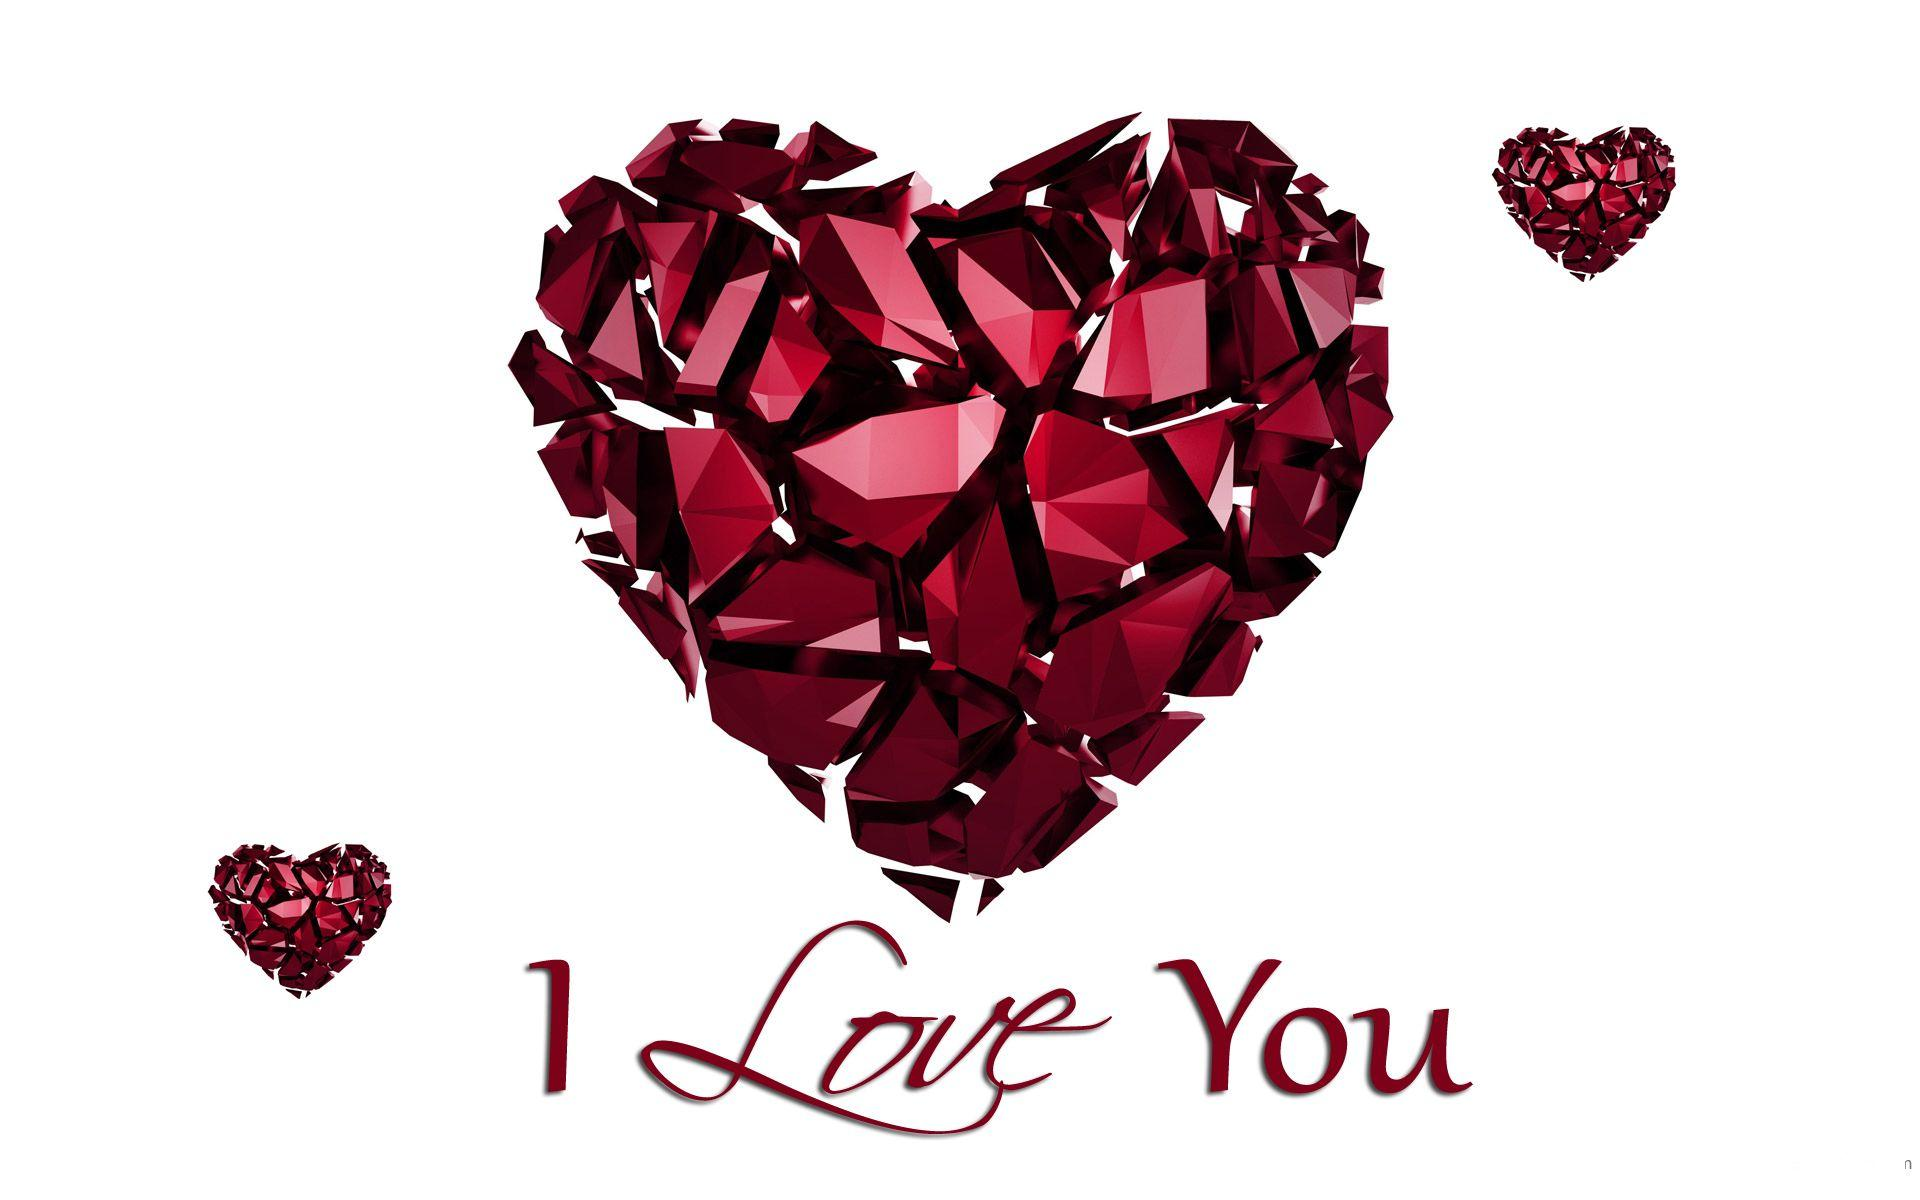 Wallpaper I Love You 3d : I Love You Image Wallpapers - Wallpaper cave